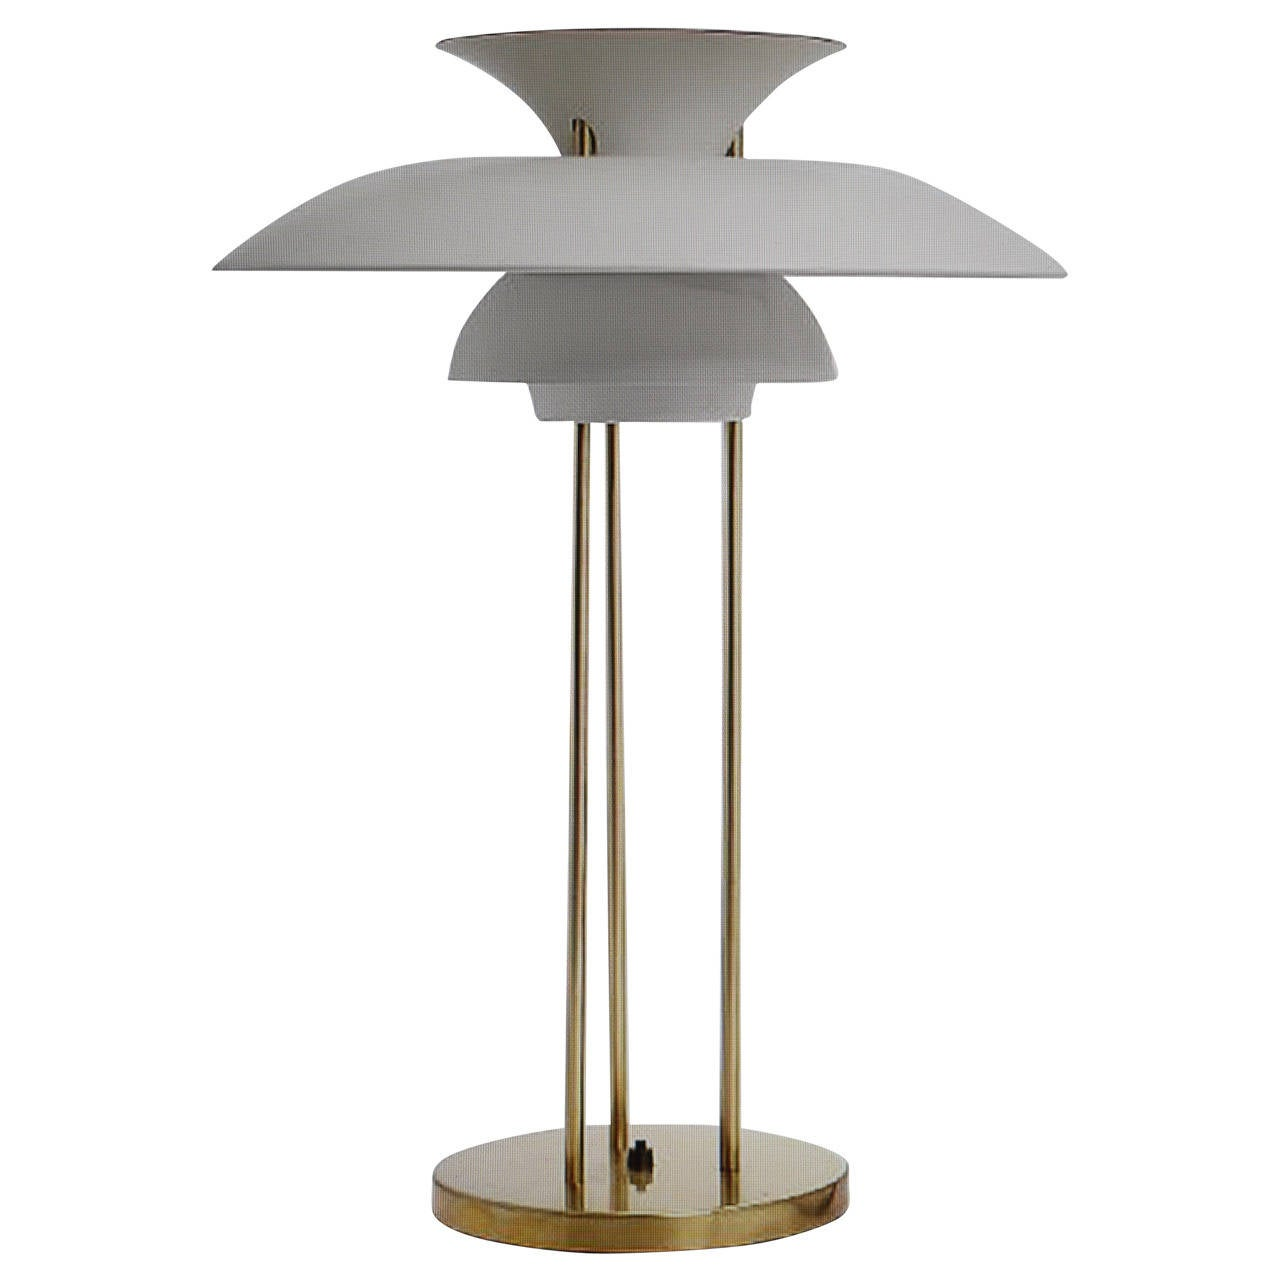 poul henningsen ph5 table lamp at 1stdibs. Black Bedroom Furniture Sets. Home Design Ideas